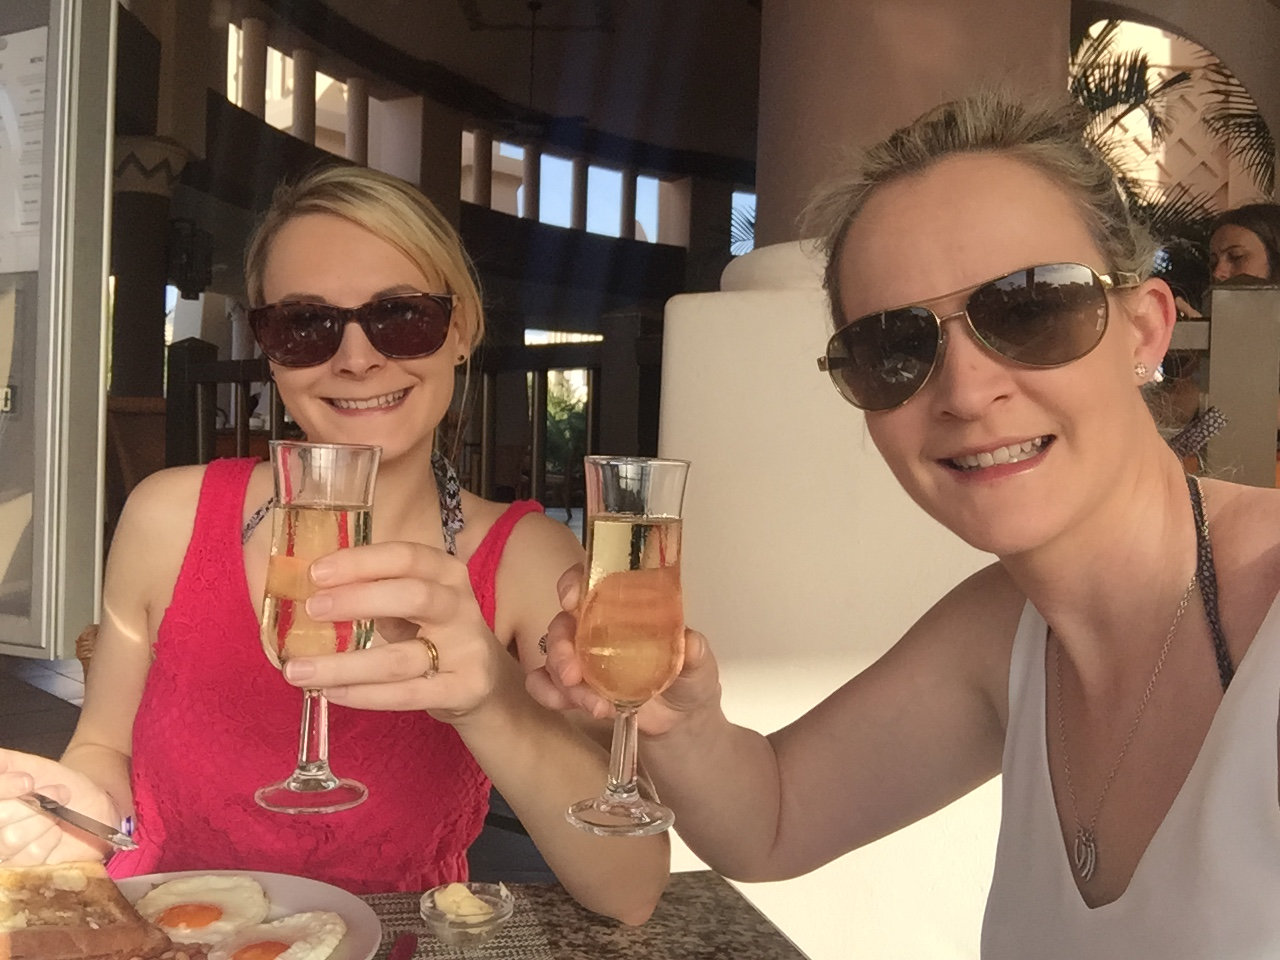 Prosecco for Breakfast? why wouldn't you!